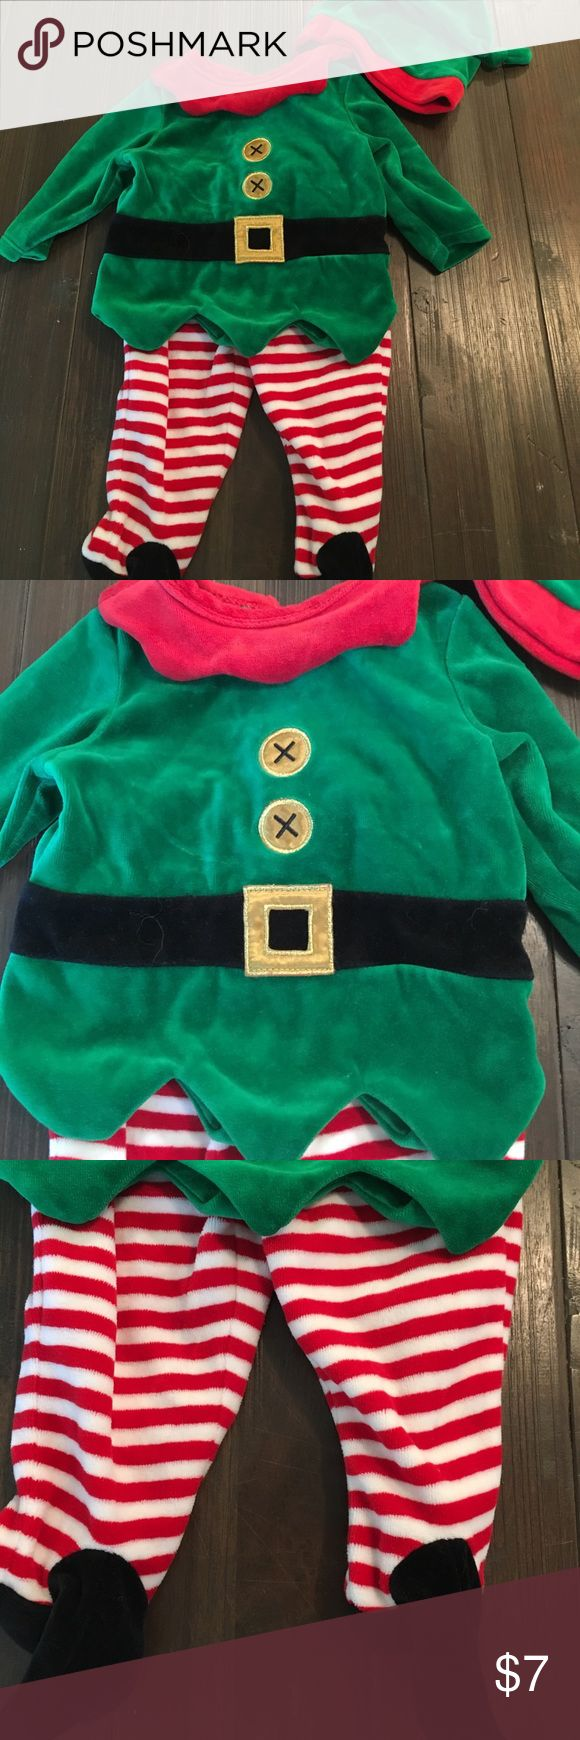 Baby elf costume Christmas Baby elf costume with striped footed pants, green top with Faux buttons and belt and hat! Adorable! Bundle and save! Koala Kids Matching Sets